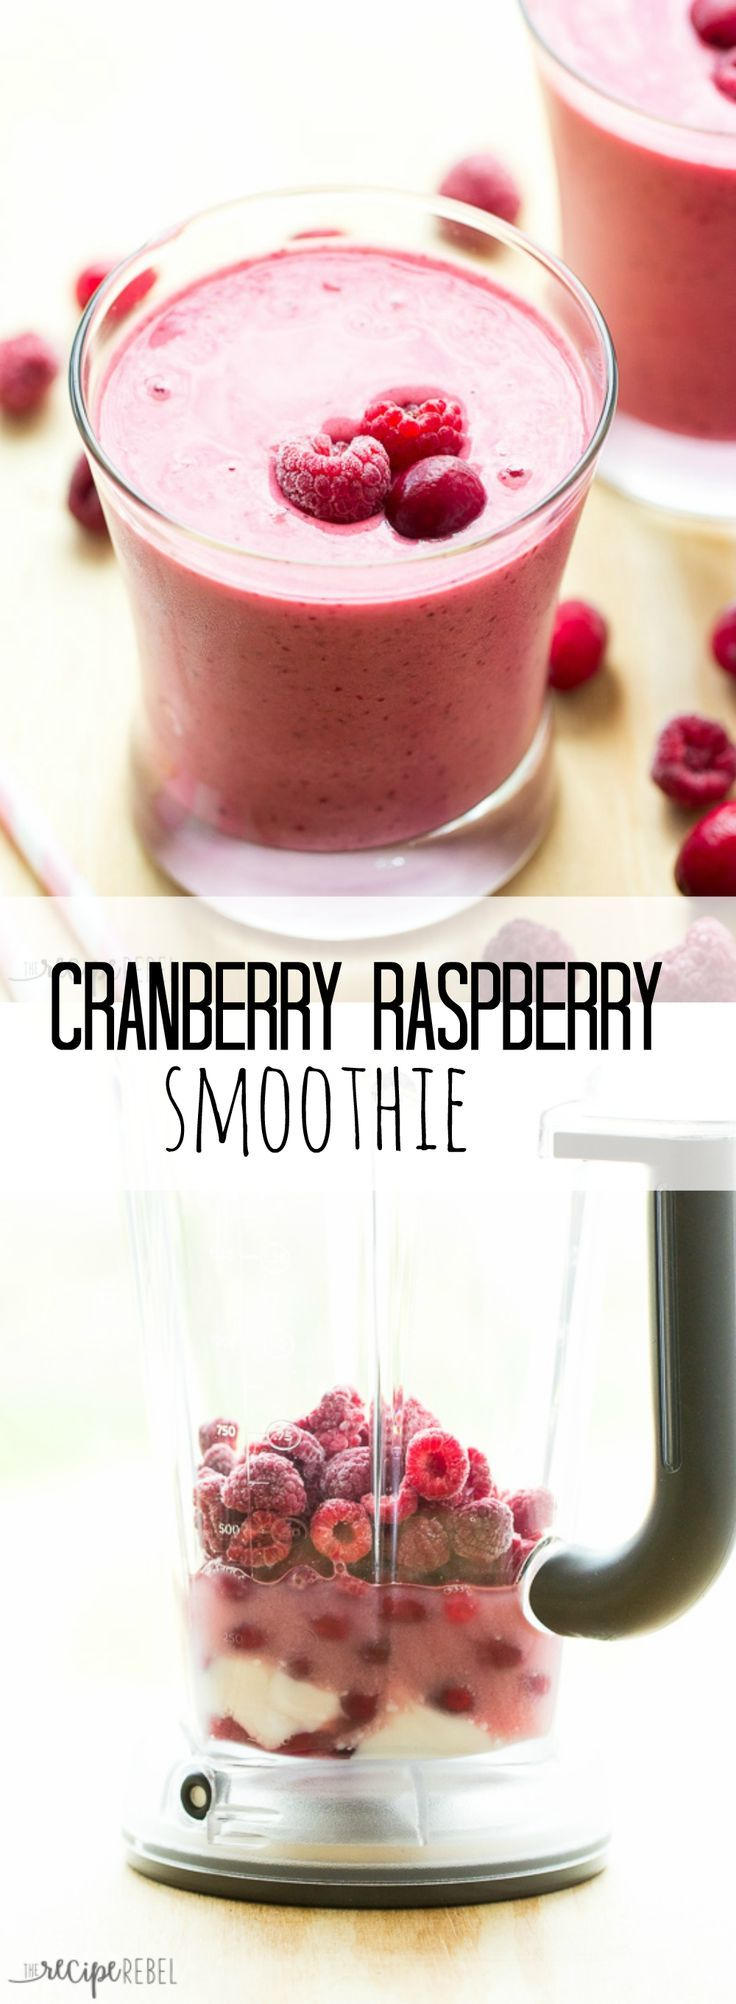 A sweet, tangy and creamy cranberry raspberry smoothie made with few, simple ingredients — the perfect snack or breakfast! Plus a review of the KitchenAid Torrent Blender.